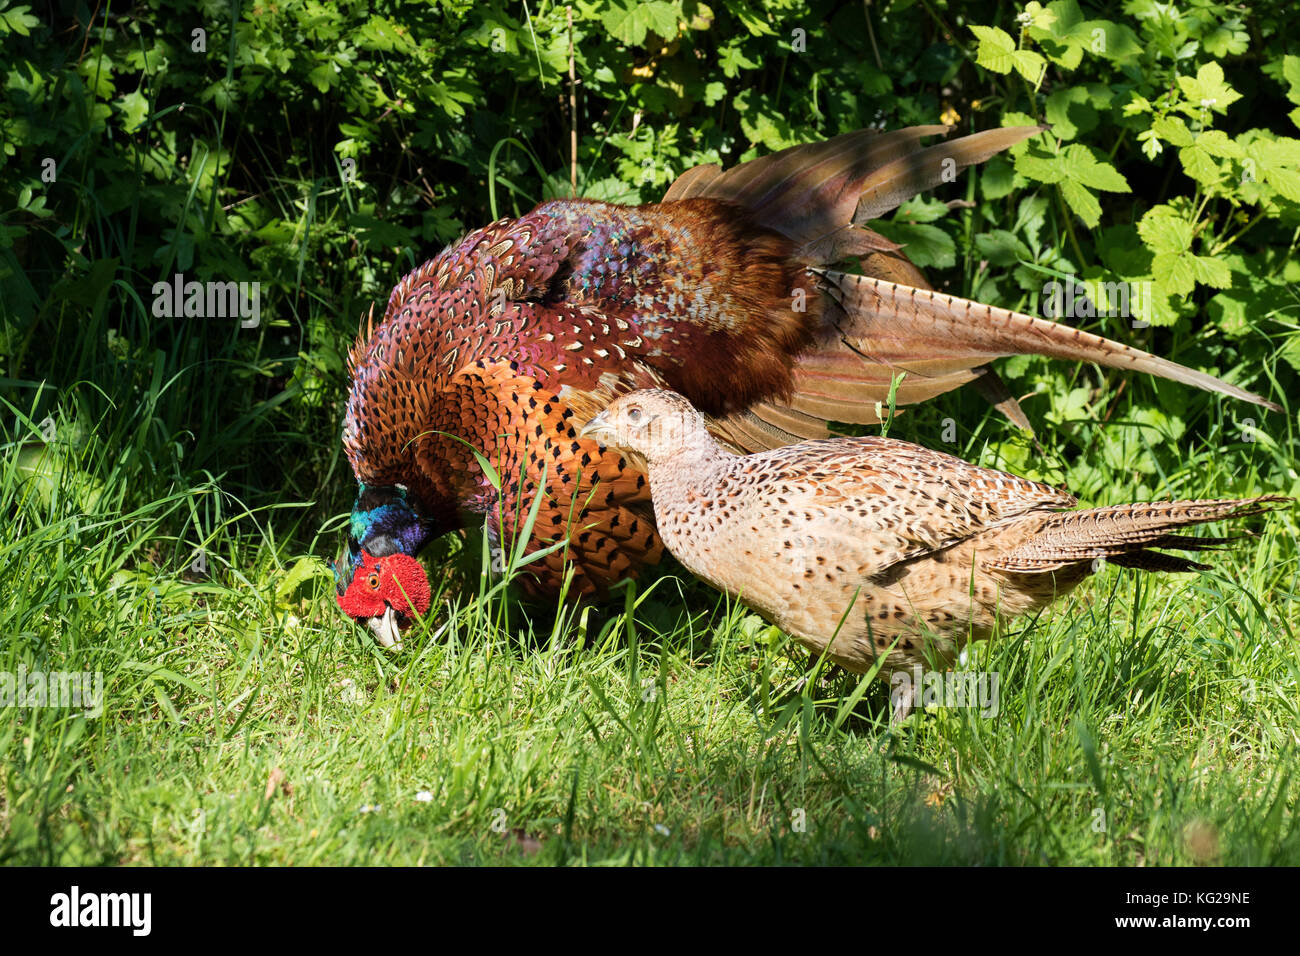 Pheasant, Phasianus colchicus, adult male displaying to female during courtship. Worcestershire, UK. Stock Photo